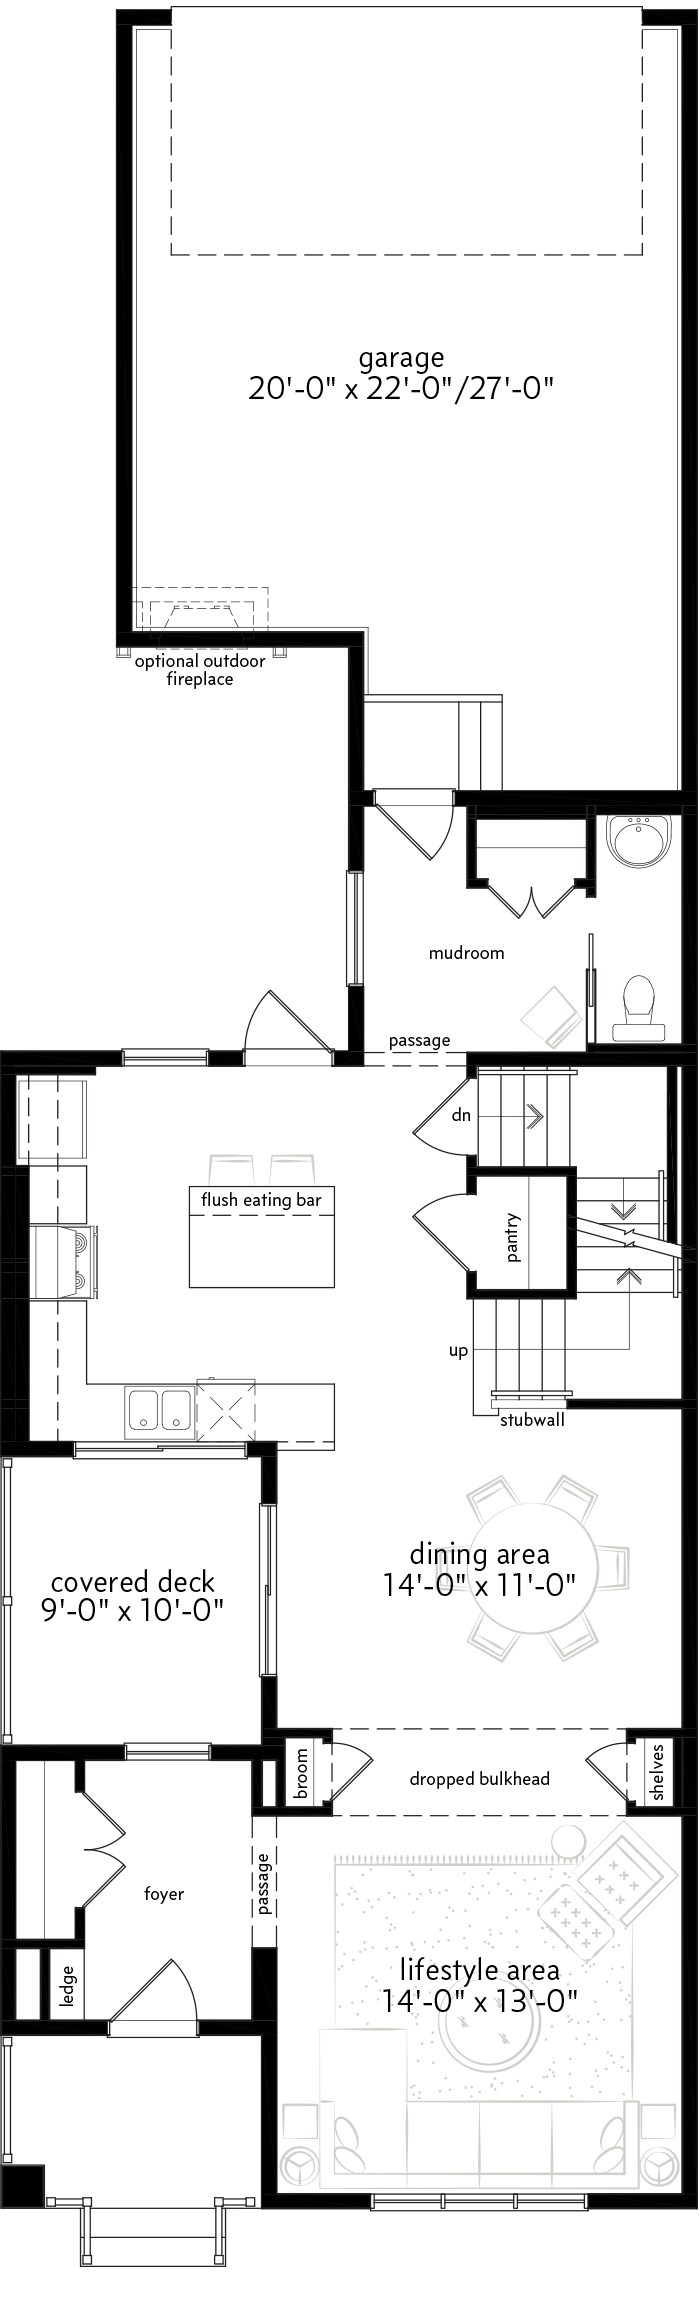 jpg freeuse download eating drawing home interior #96083974